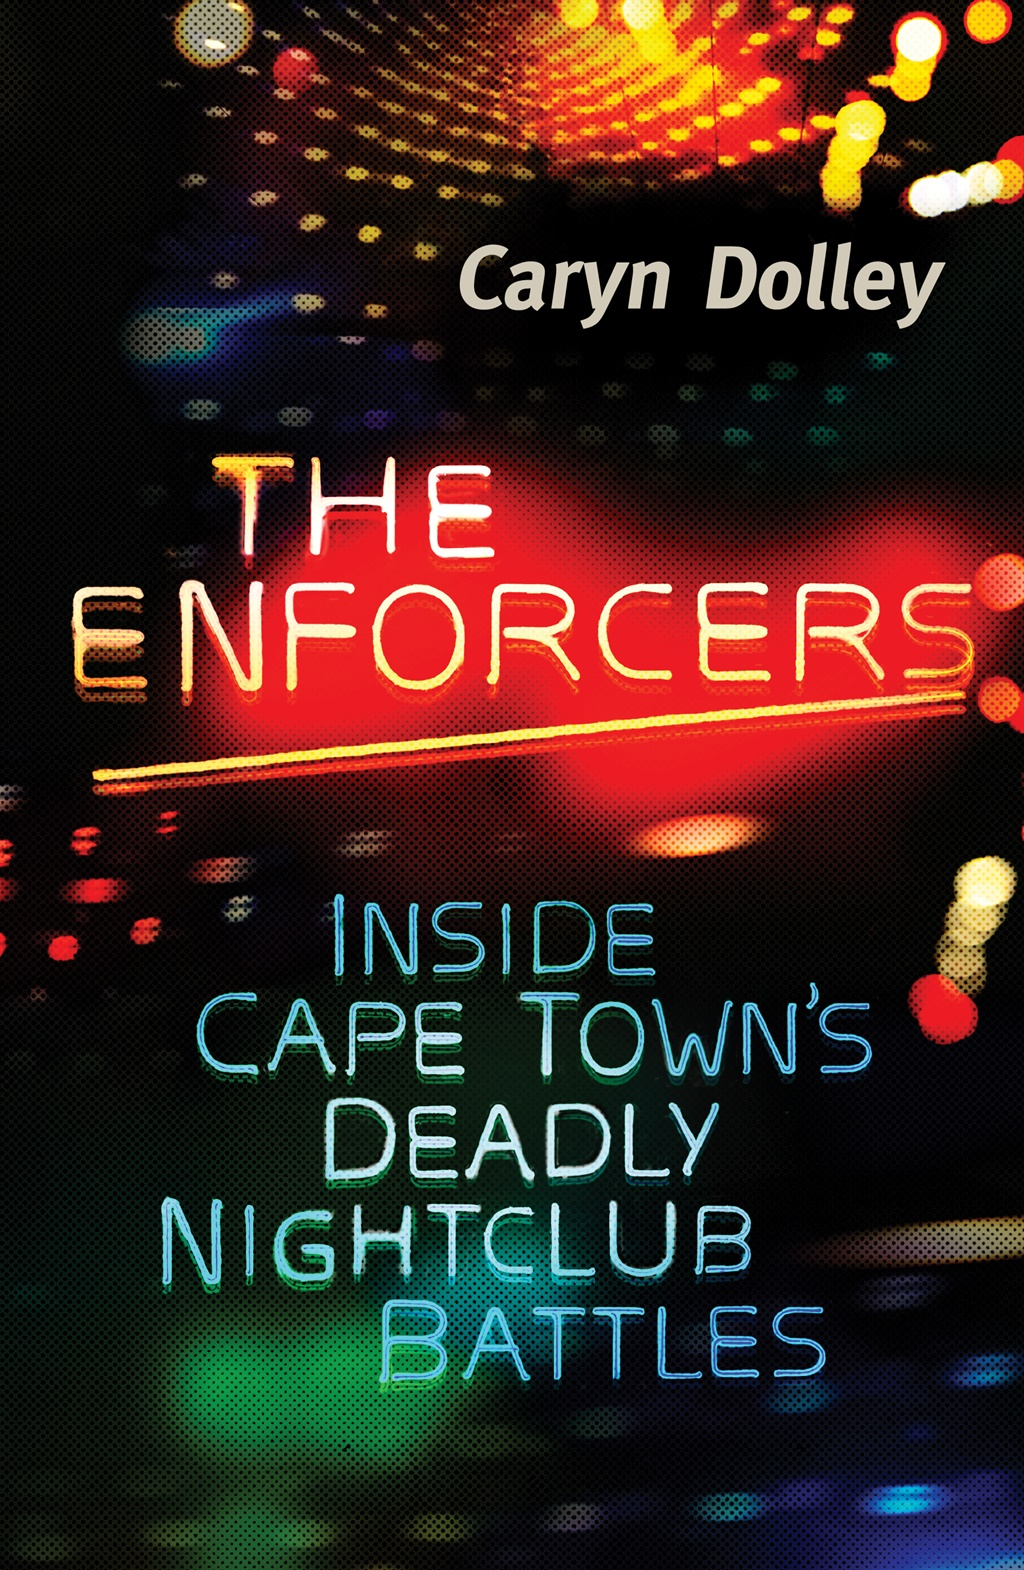 The Enforcers by Caryn Dolley, published by Jonathan Ball Publishers.